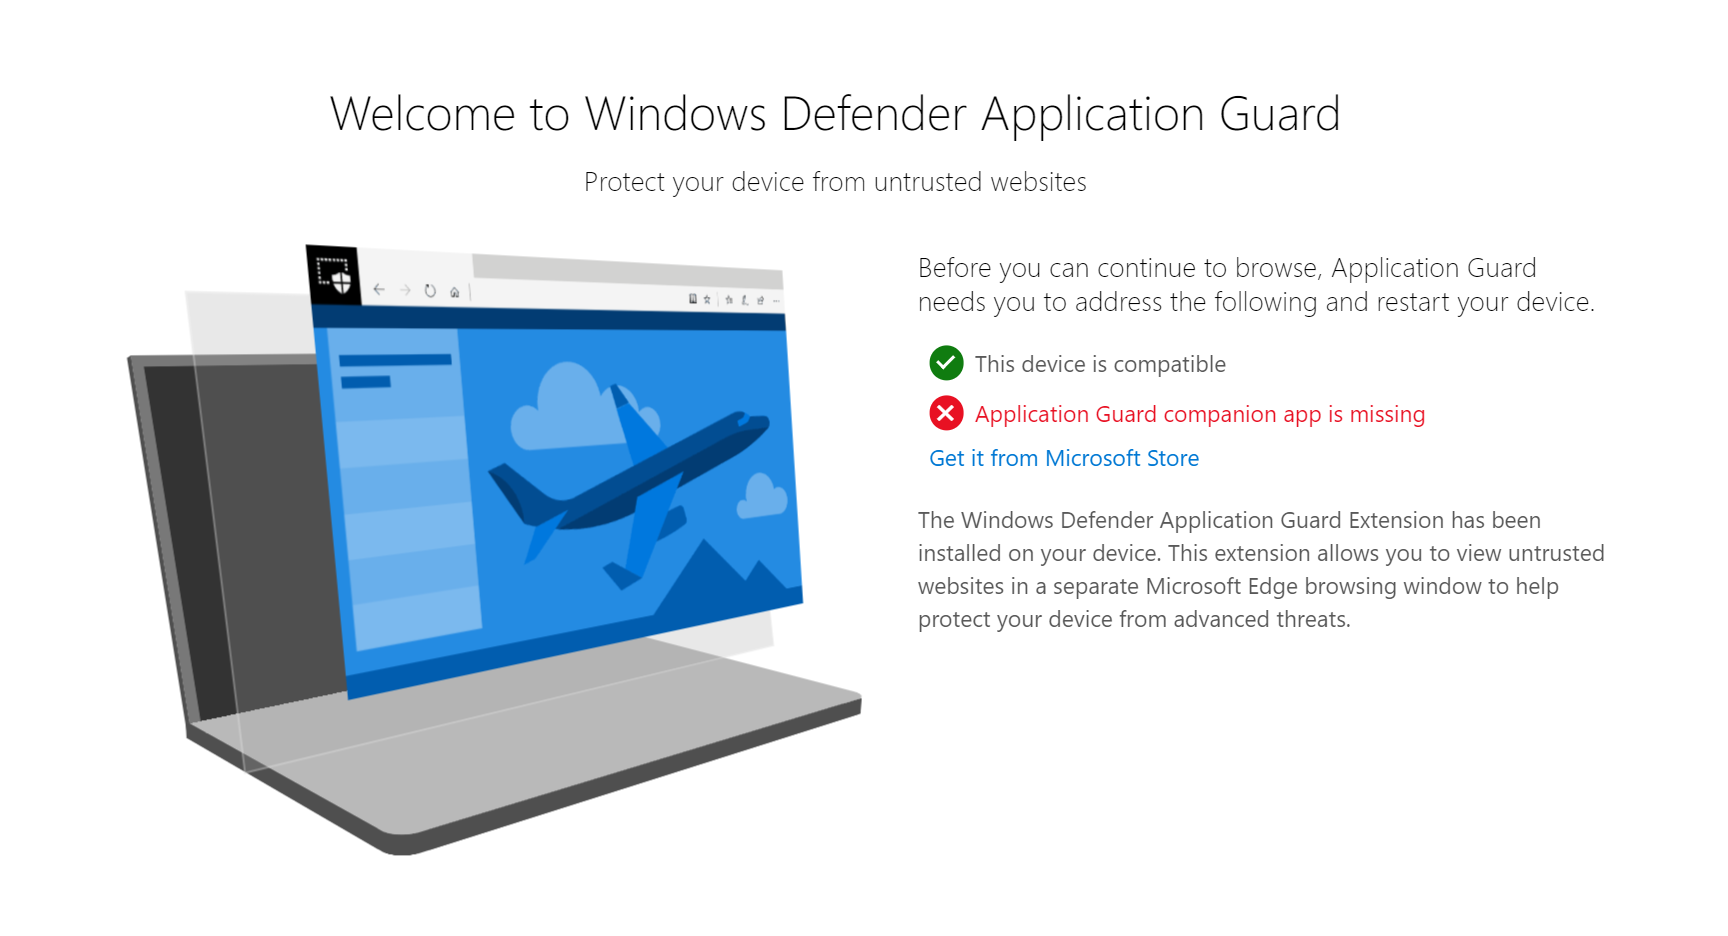 Open New Application Guard Window in Microsoft Edge windows-defender-application-guard-components-not-complete.png